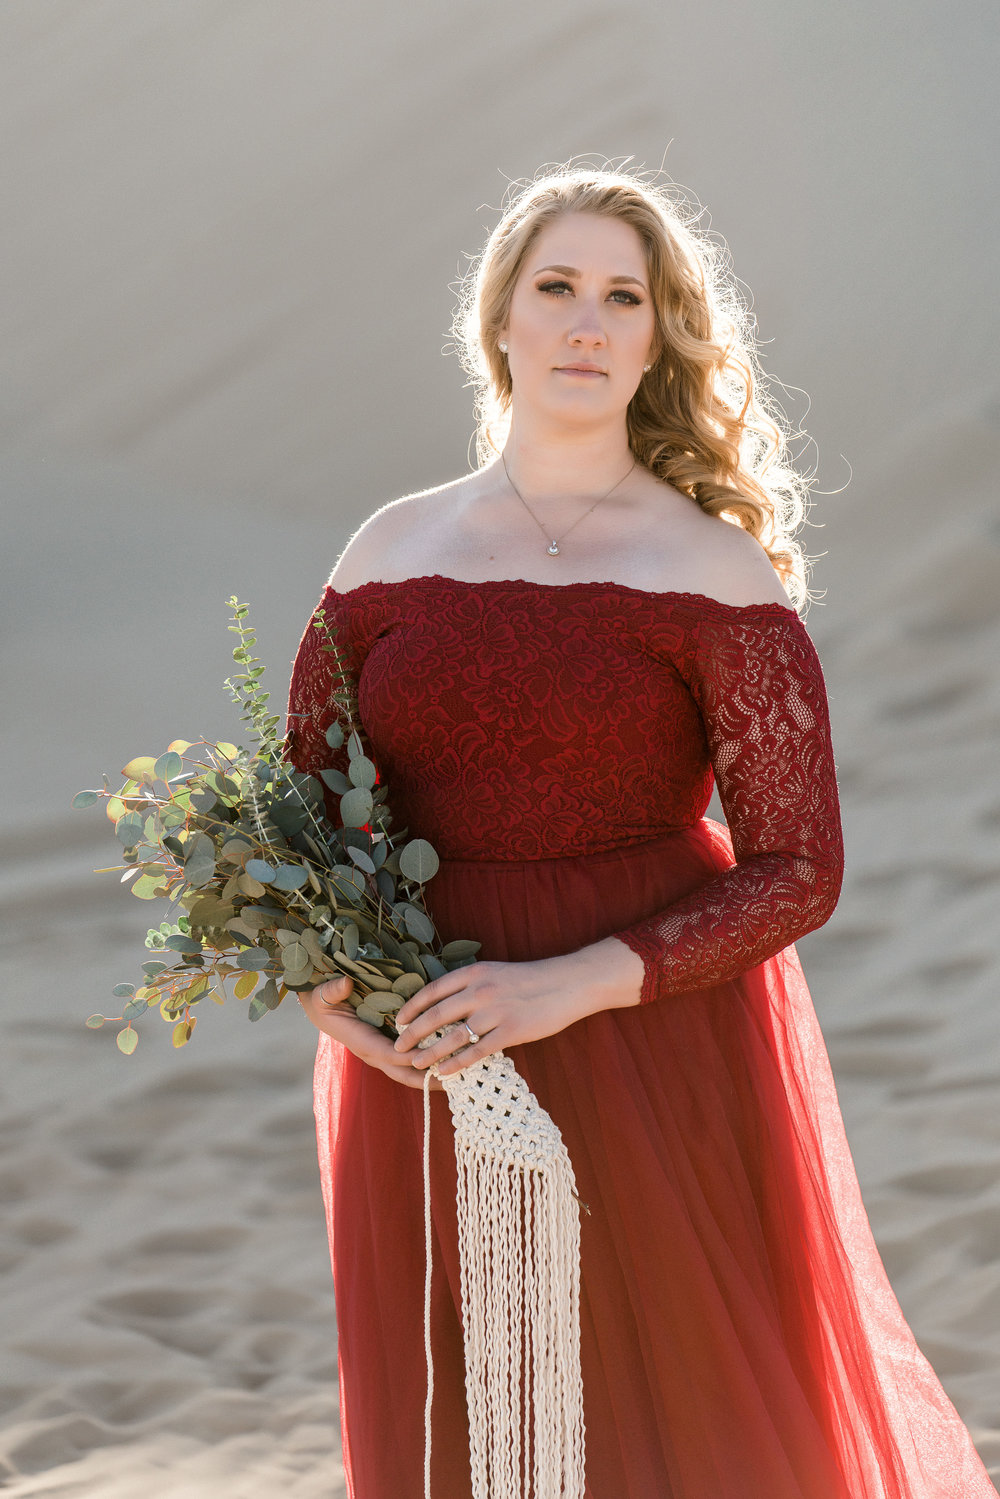 NewMexico-Sand-Dunes-Engagement-Carissa-and-Ben-1077.jpg